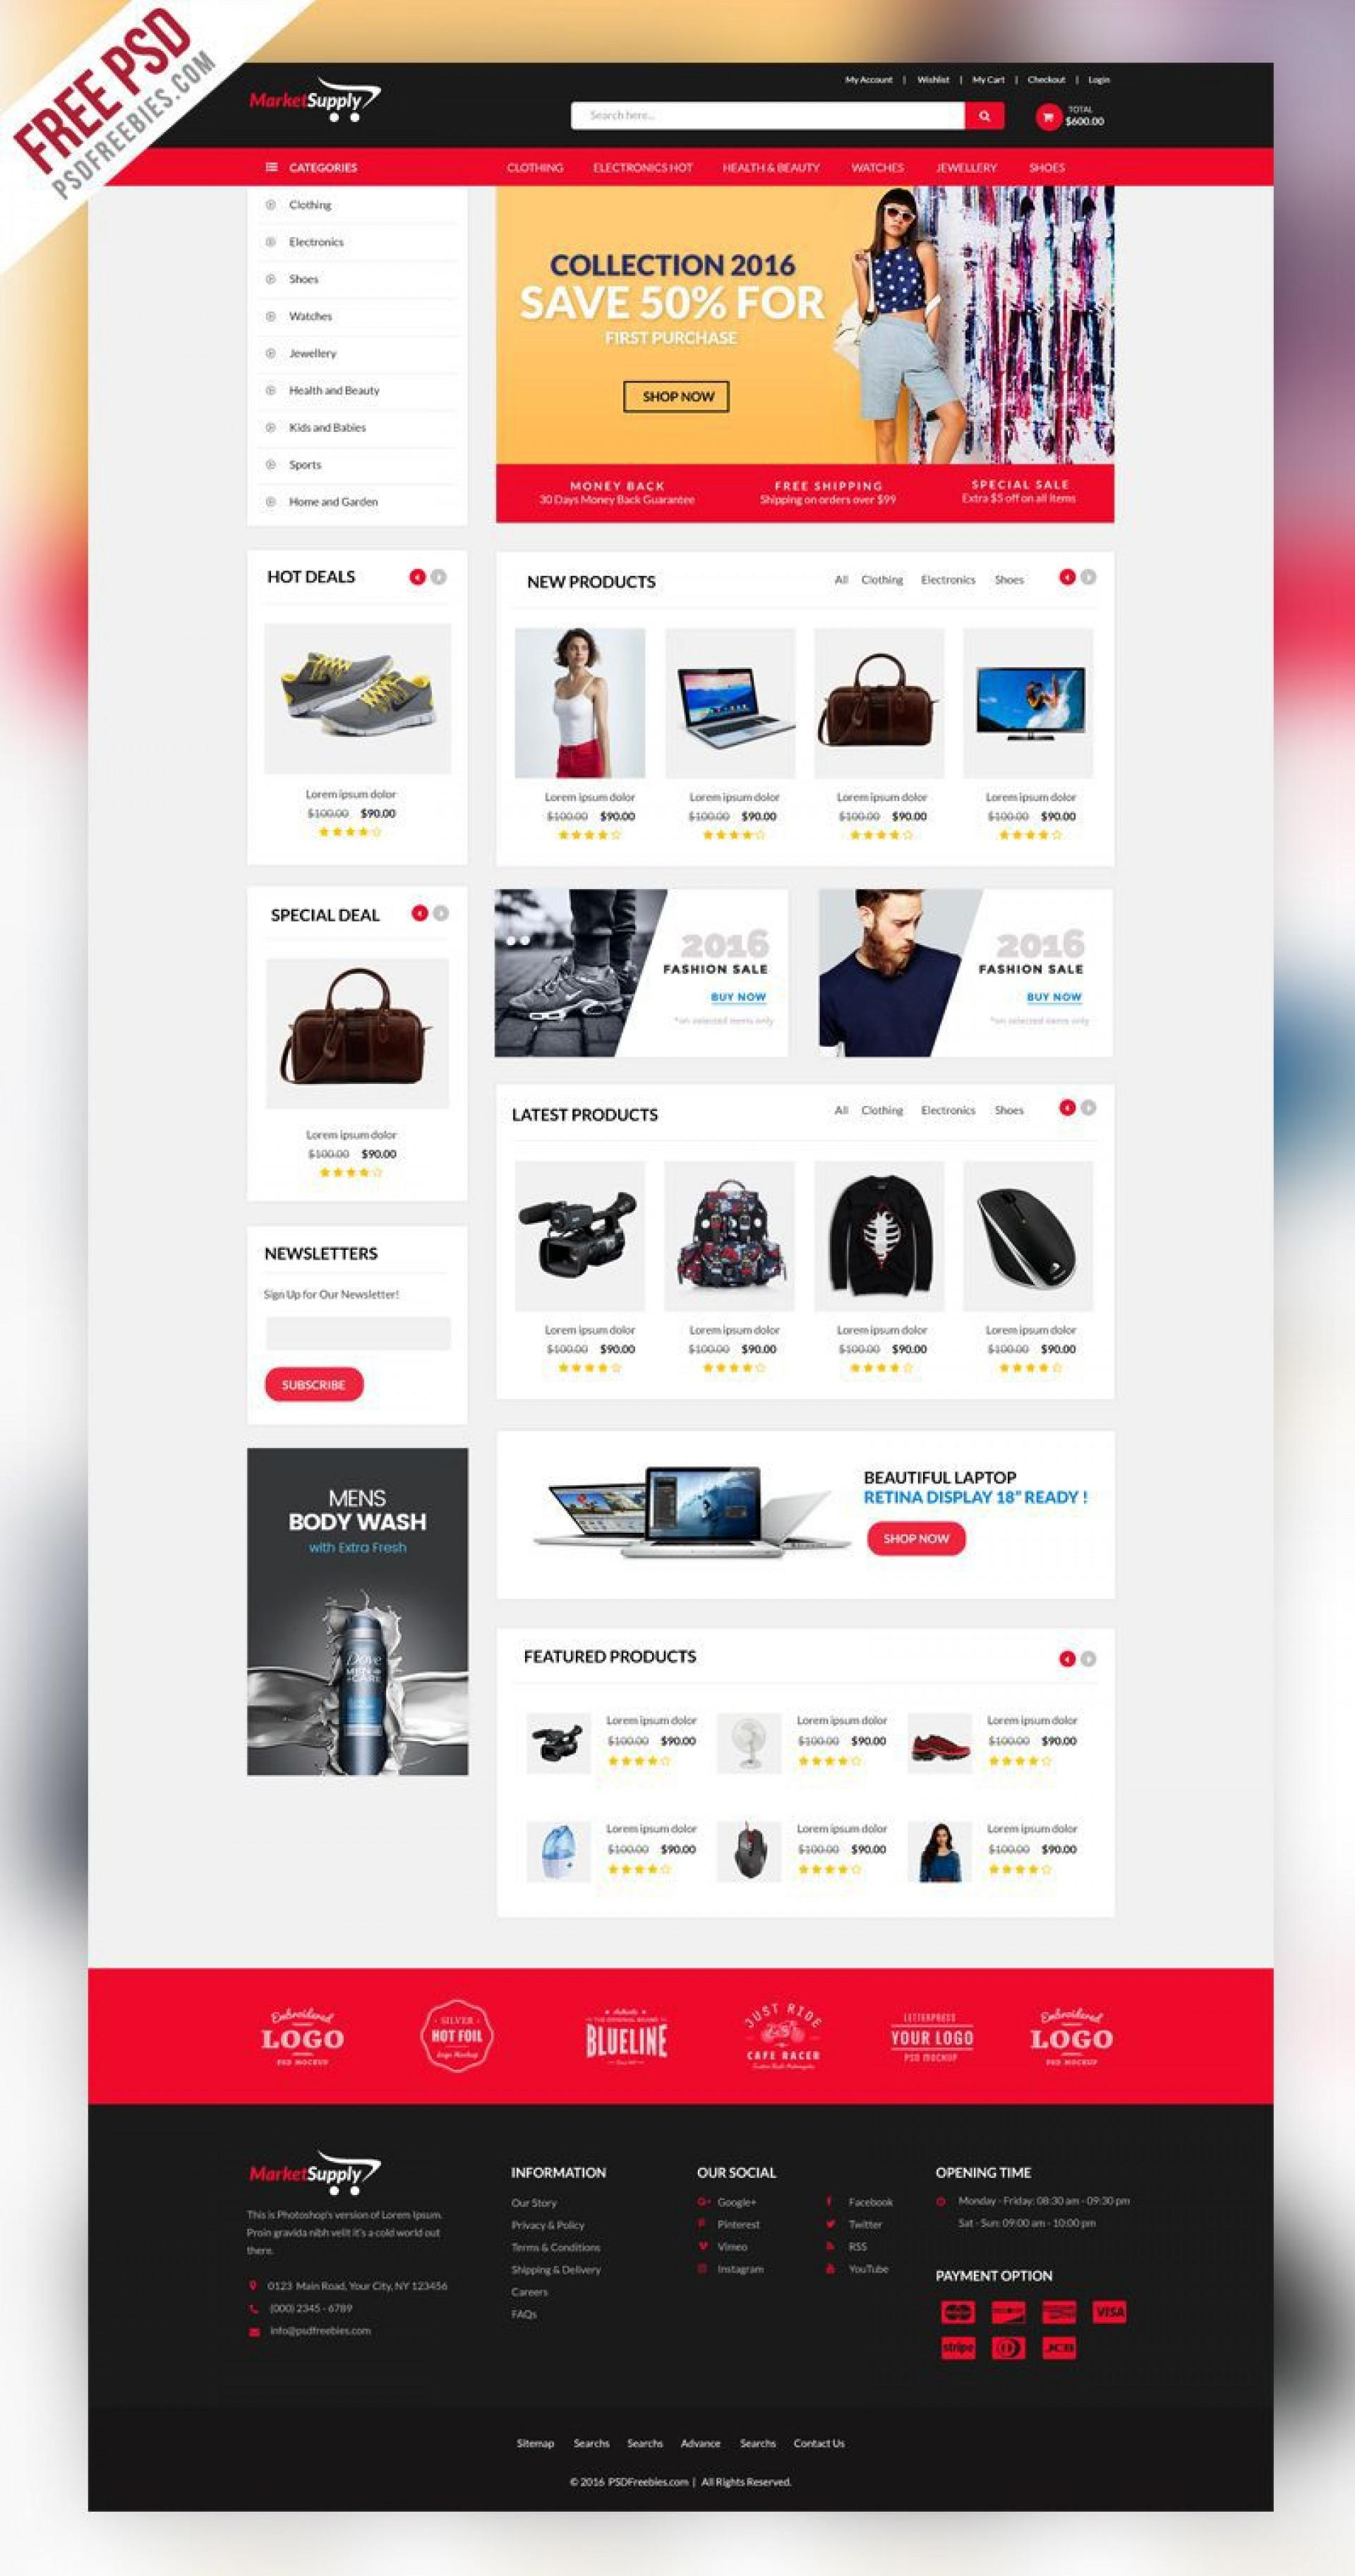 009 Magnificent Free Ecommerce Website Template Download Idea  Shopping Cart Bootstrap 31920